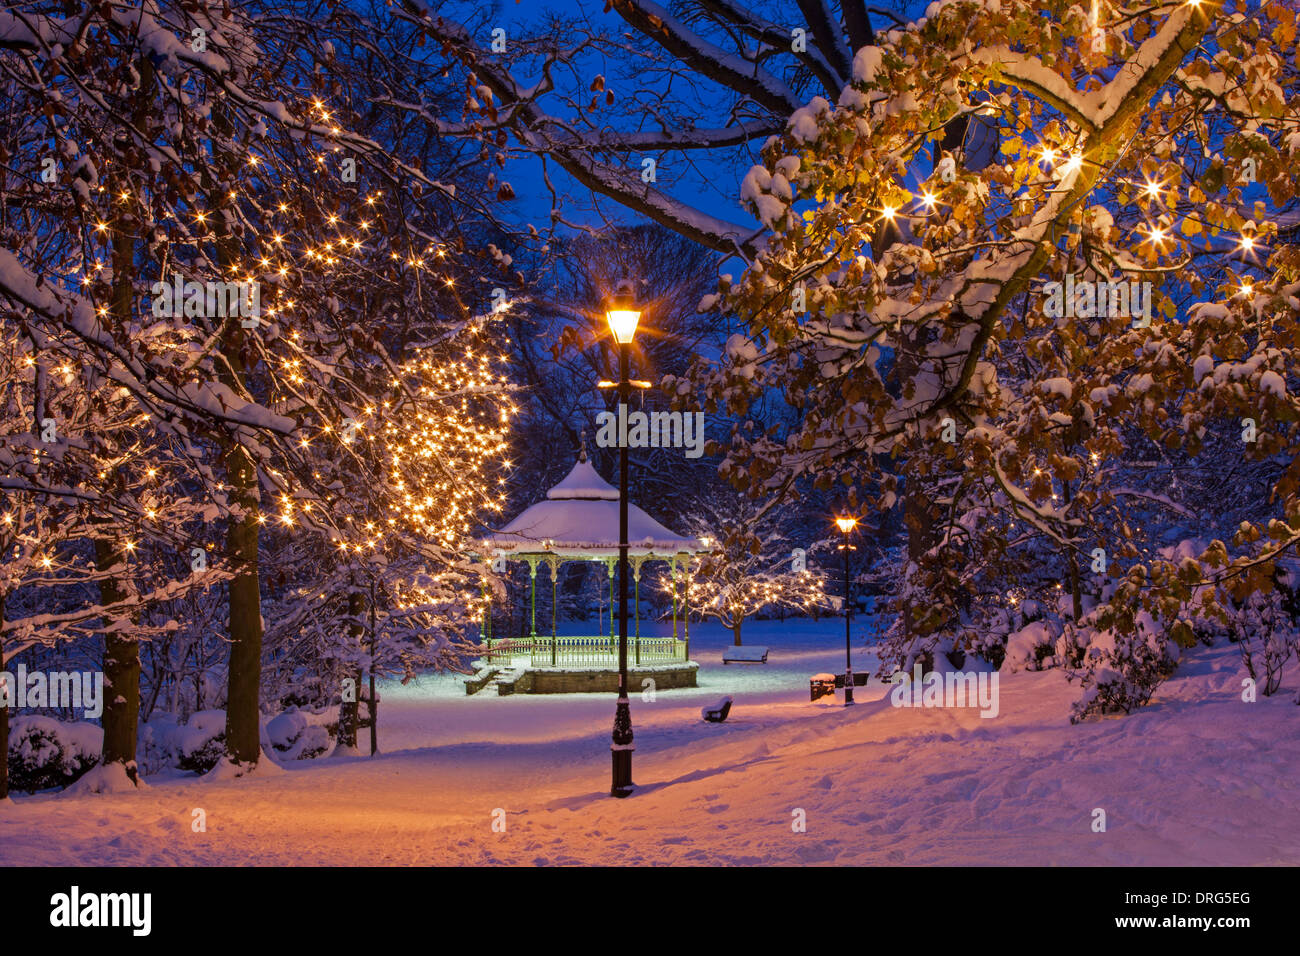 A night-time view of the Bandstand in Hexham in winter in Northumberland covered in snow illuminated by street lighting Stock Photo